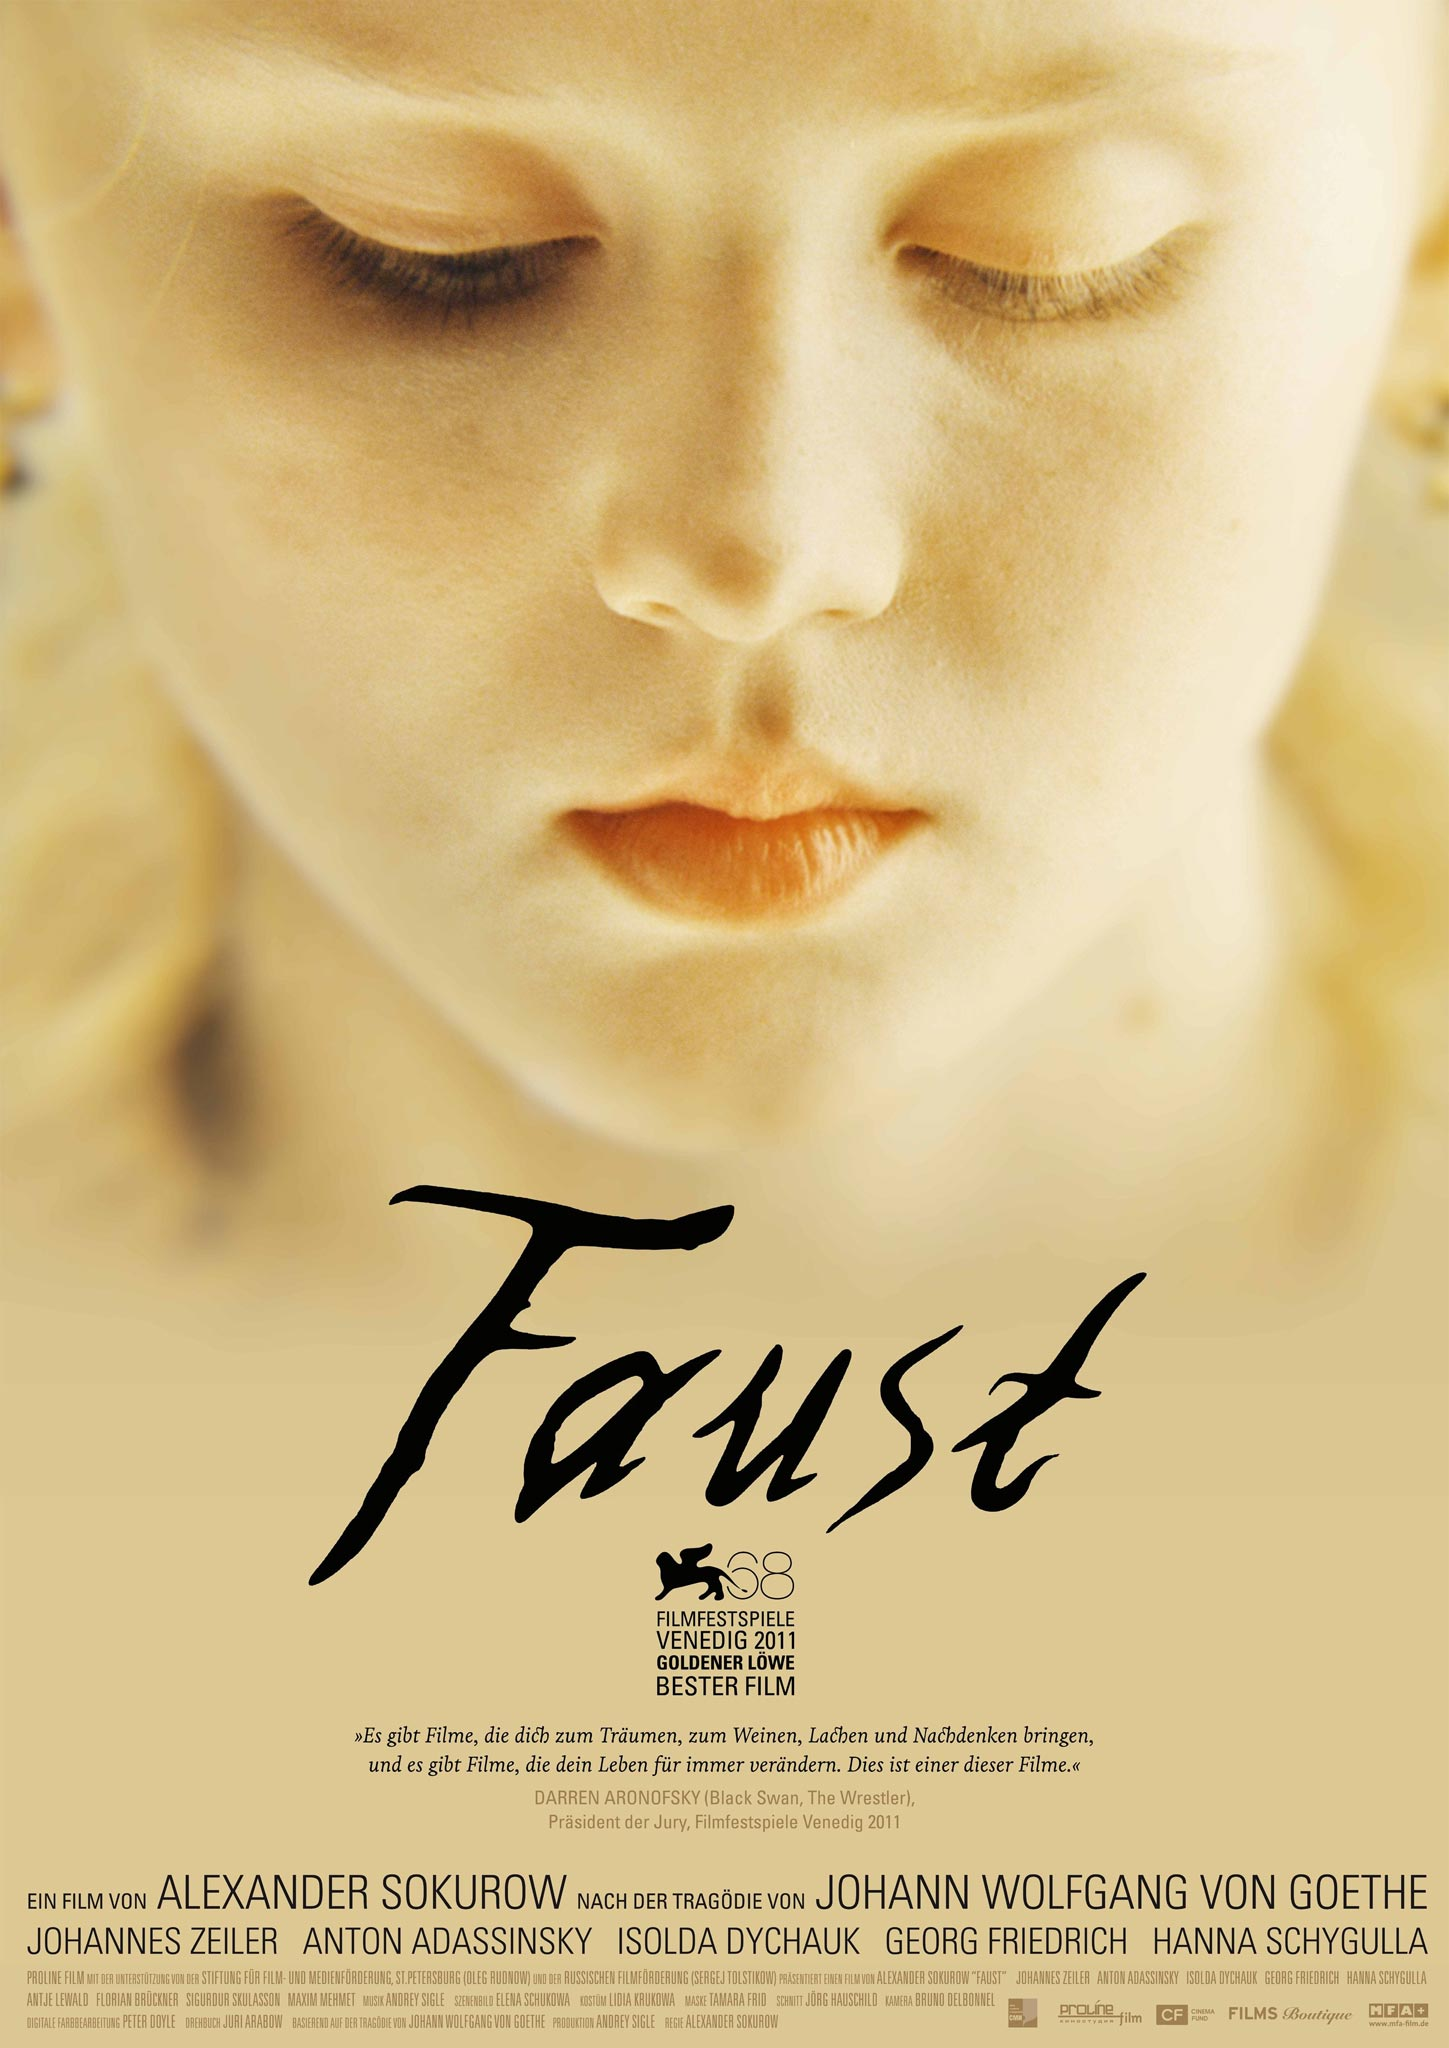 [UP.TO] Faust [VOSTFR][DVDRiP]